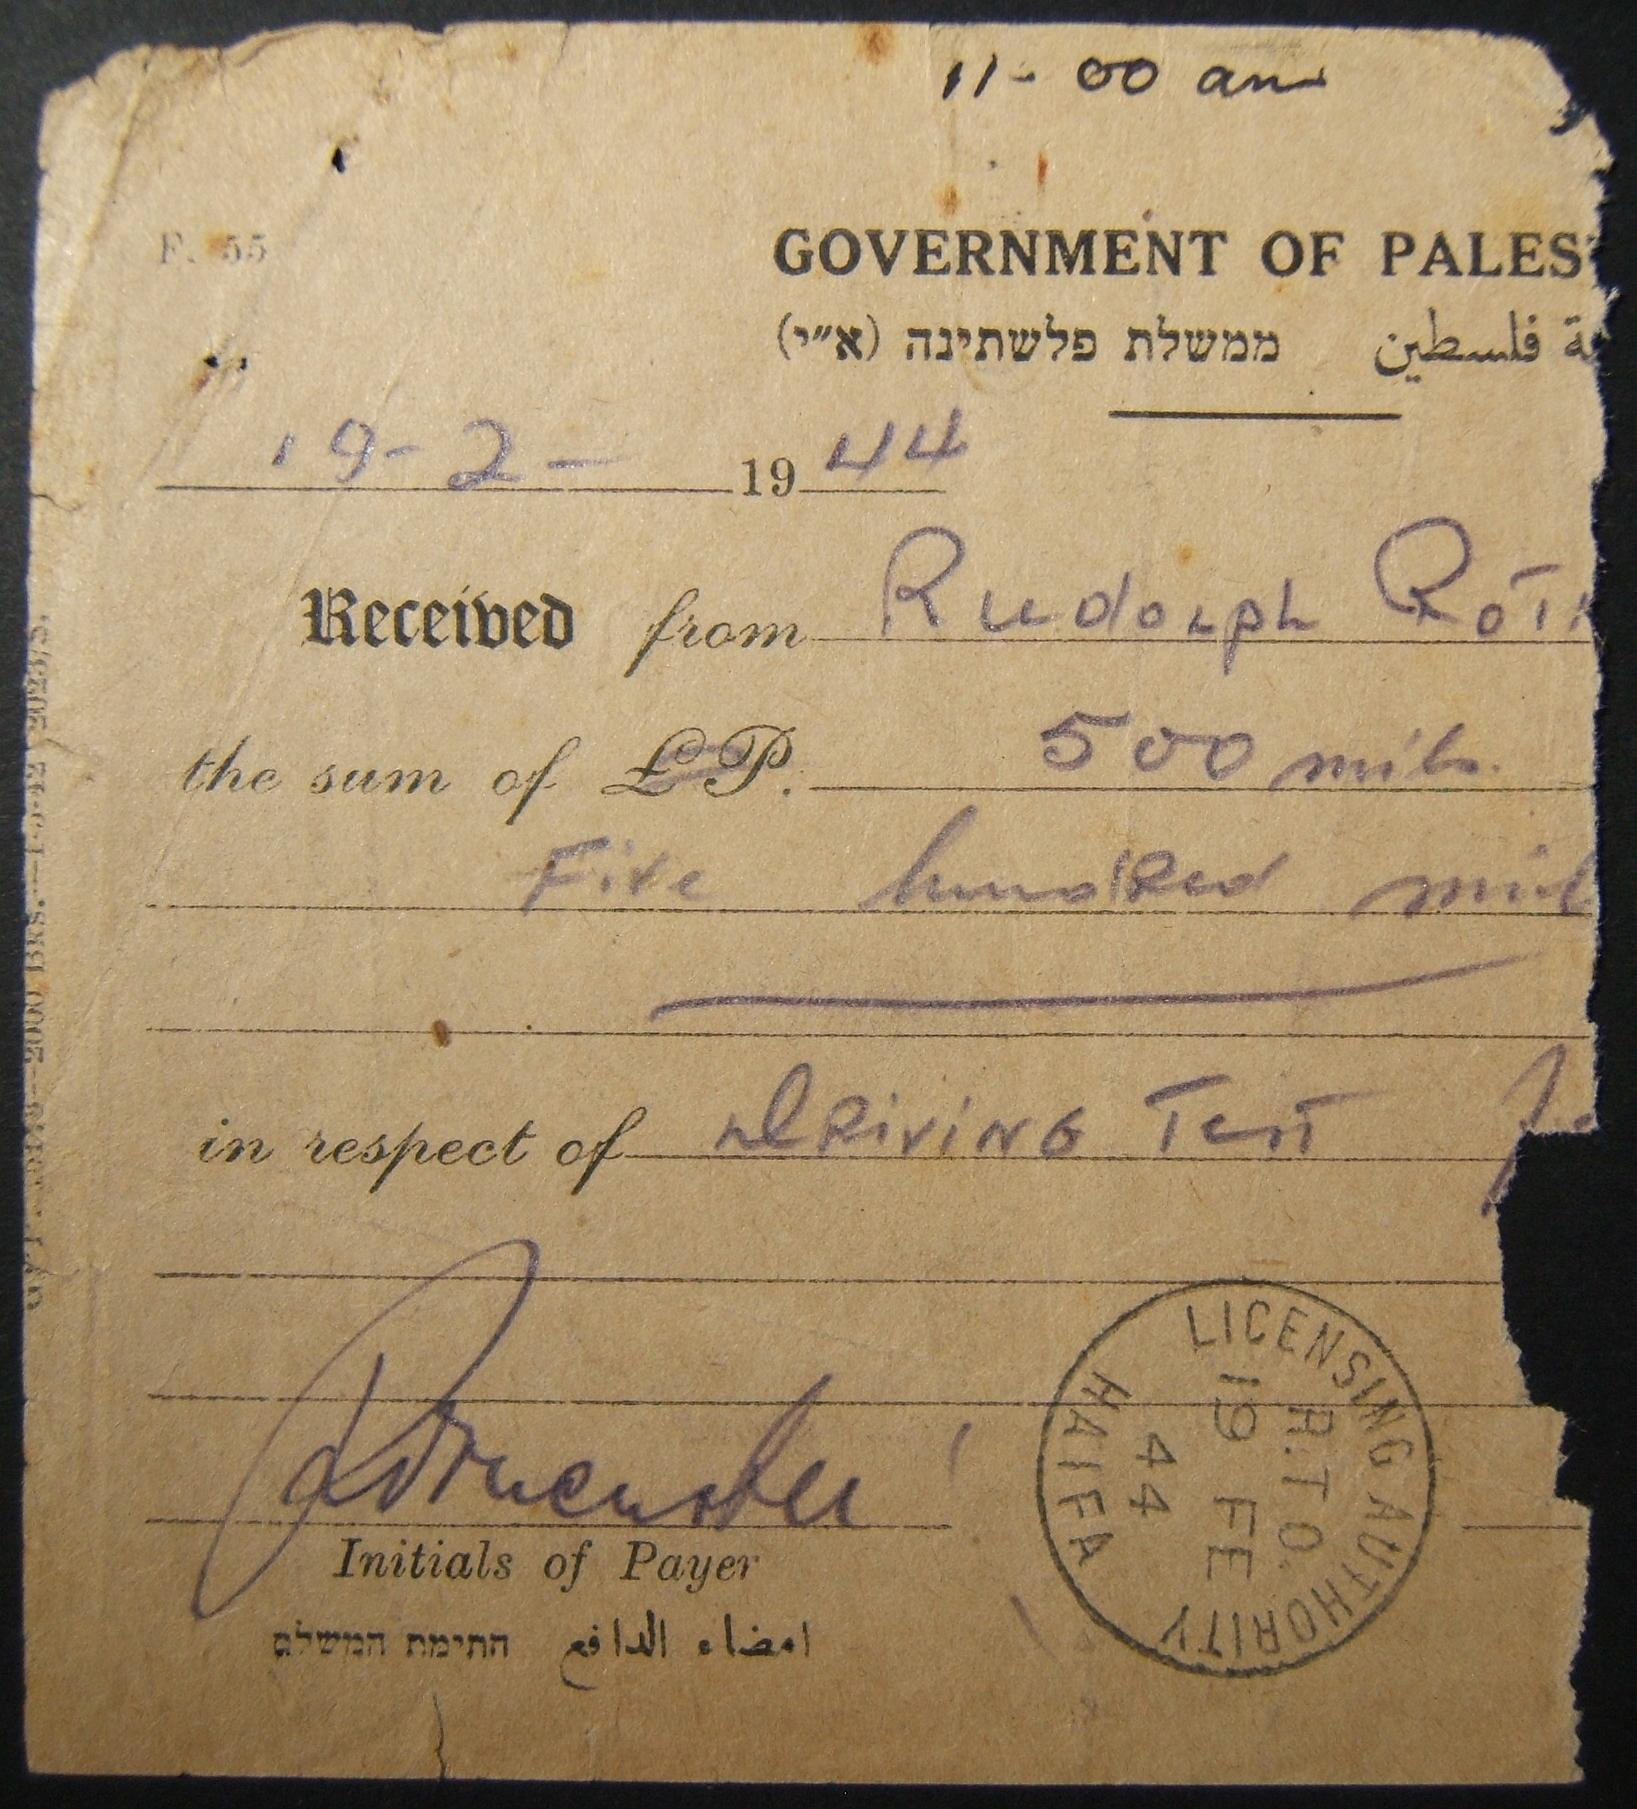 Palestine Mandate receipt stamped by rare Haifa Licensing Authority postmark 1944